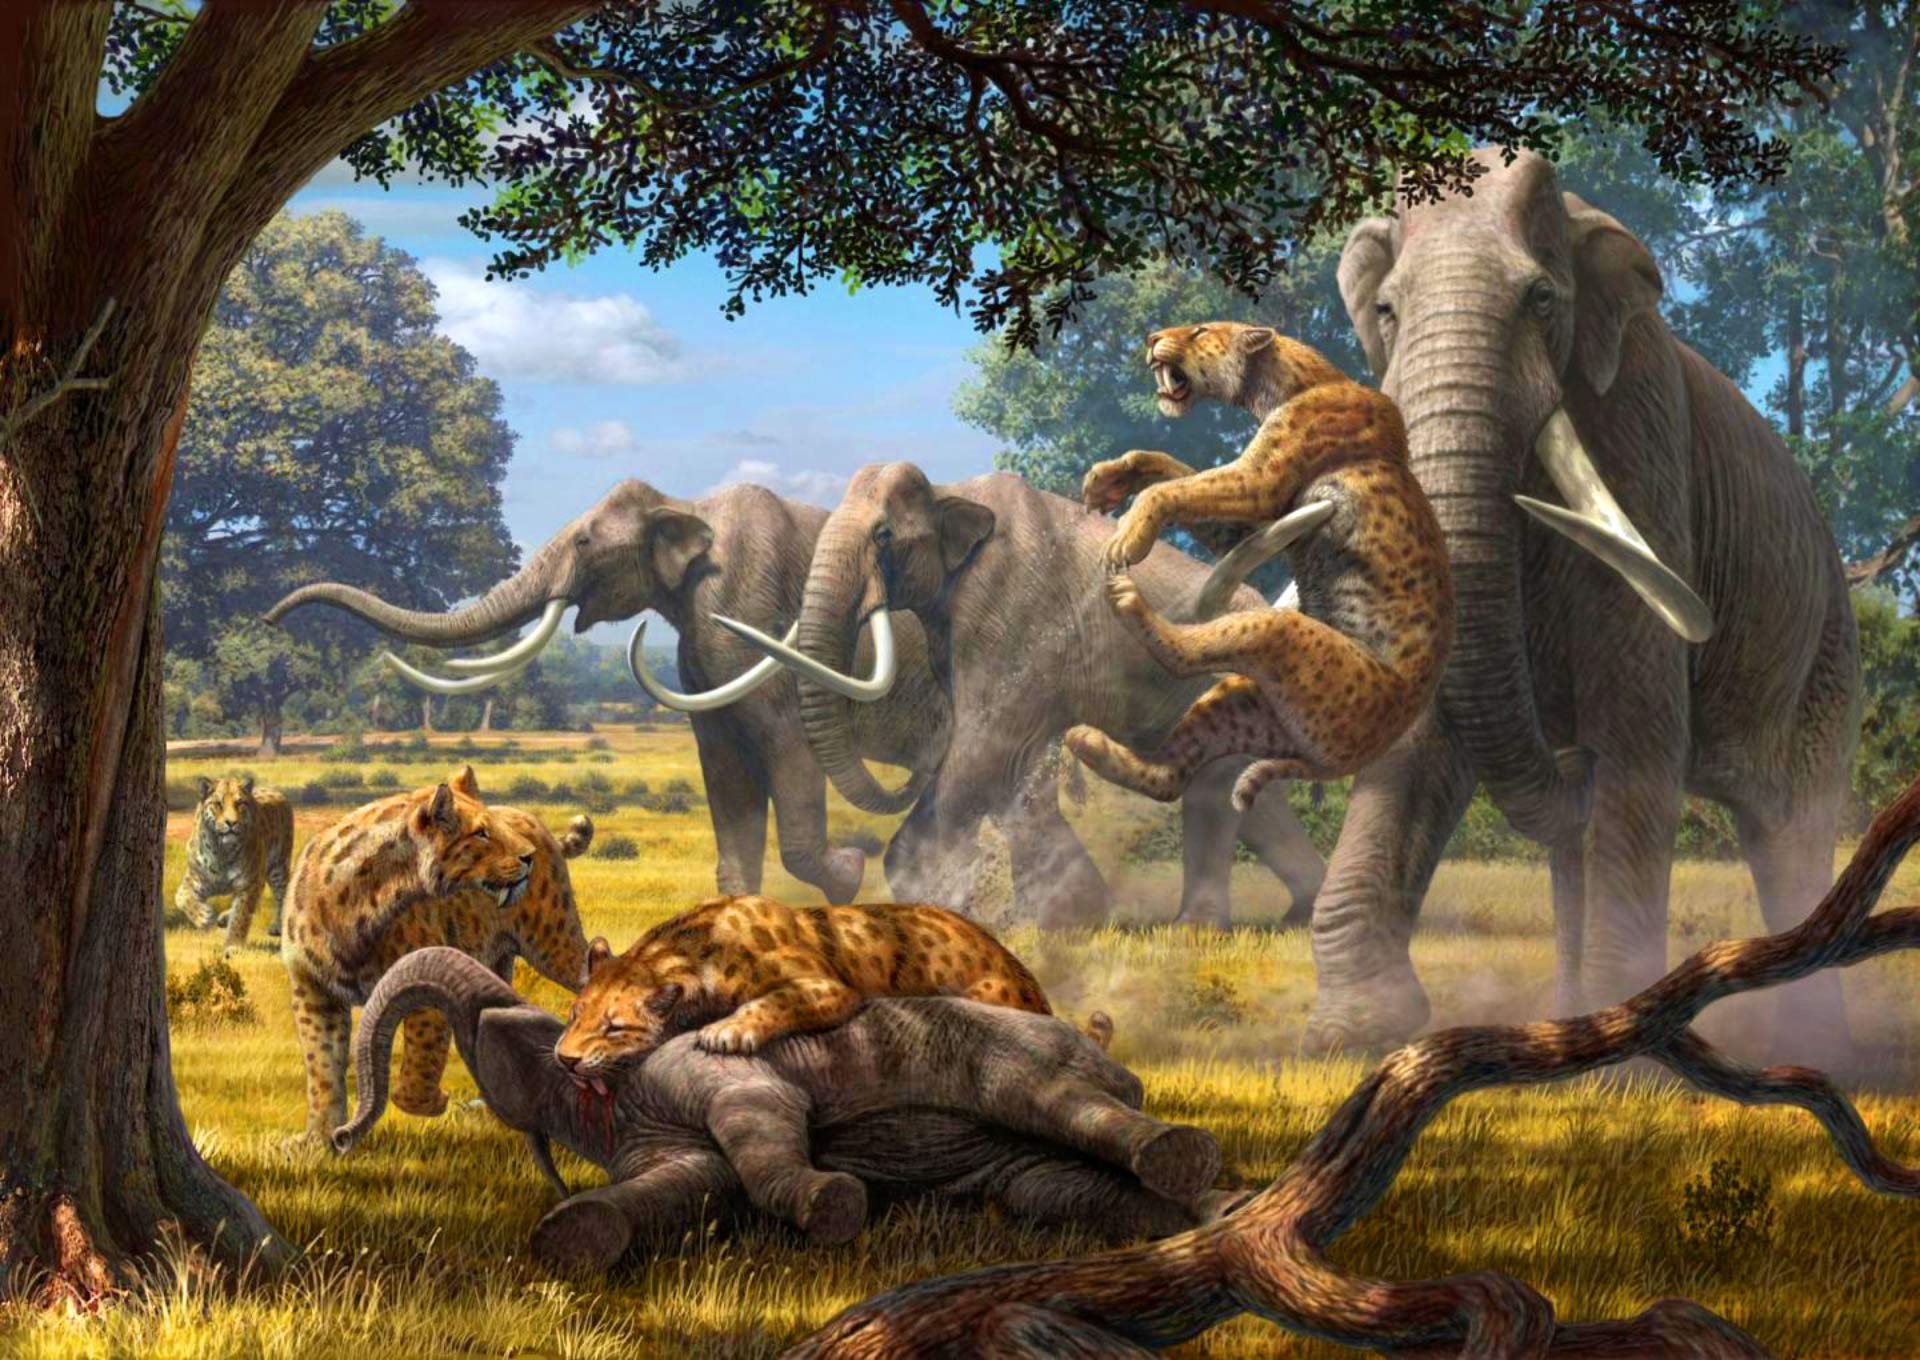 Think lions are scary today? You have no idea about the Pleistocene epoch